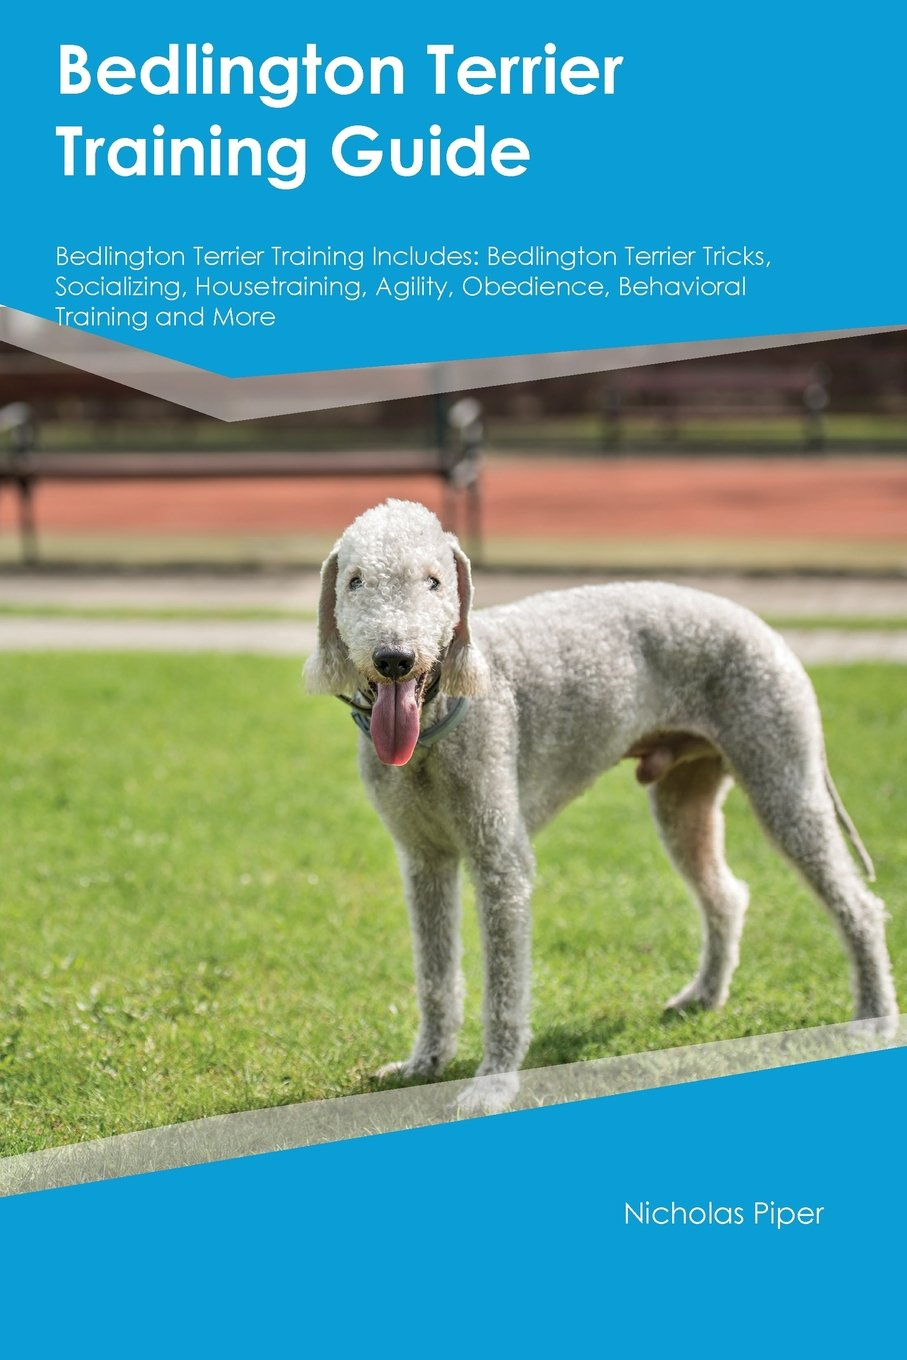 Bedlington Terrier Training Guide Bedlington Terrier Training Includes: Bedlington Terrier Tricks, Socializing…